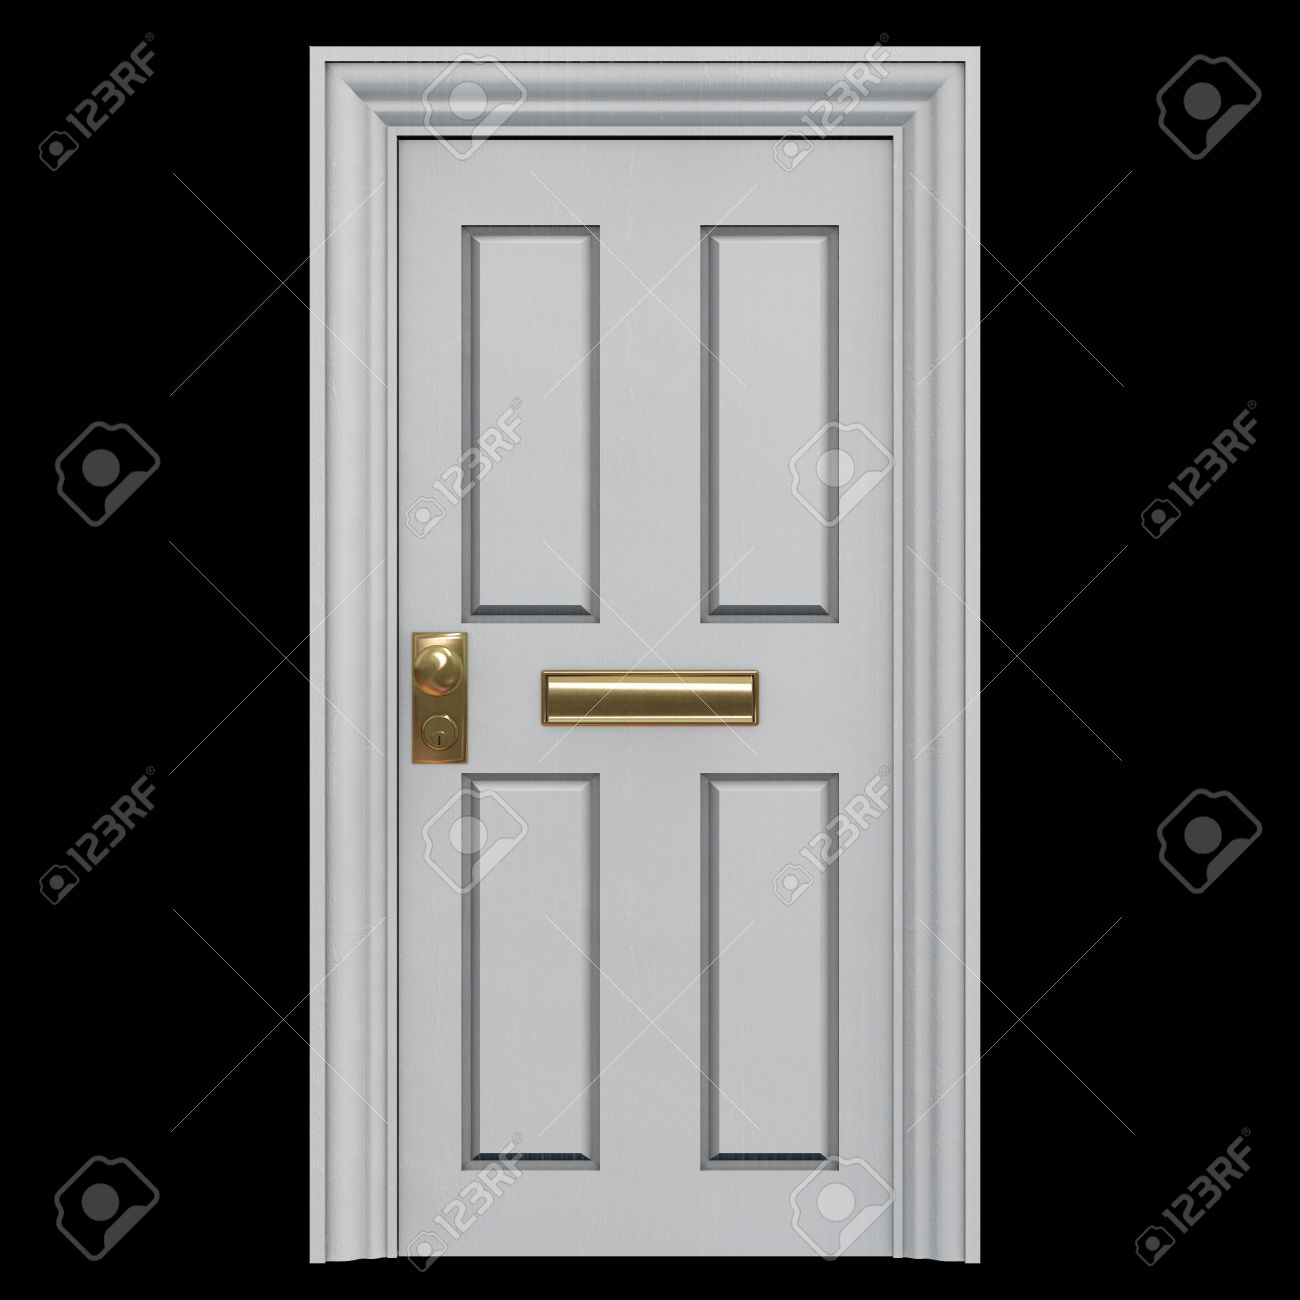 Illustration - White Door to a house with a mail slot. 3D Illustration. Graphic Element. & White Door To A House With A Mail Slot. 3D Illustration. Graphic ...